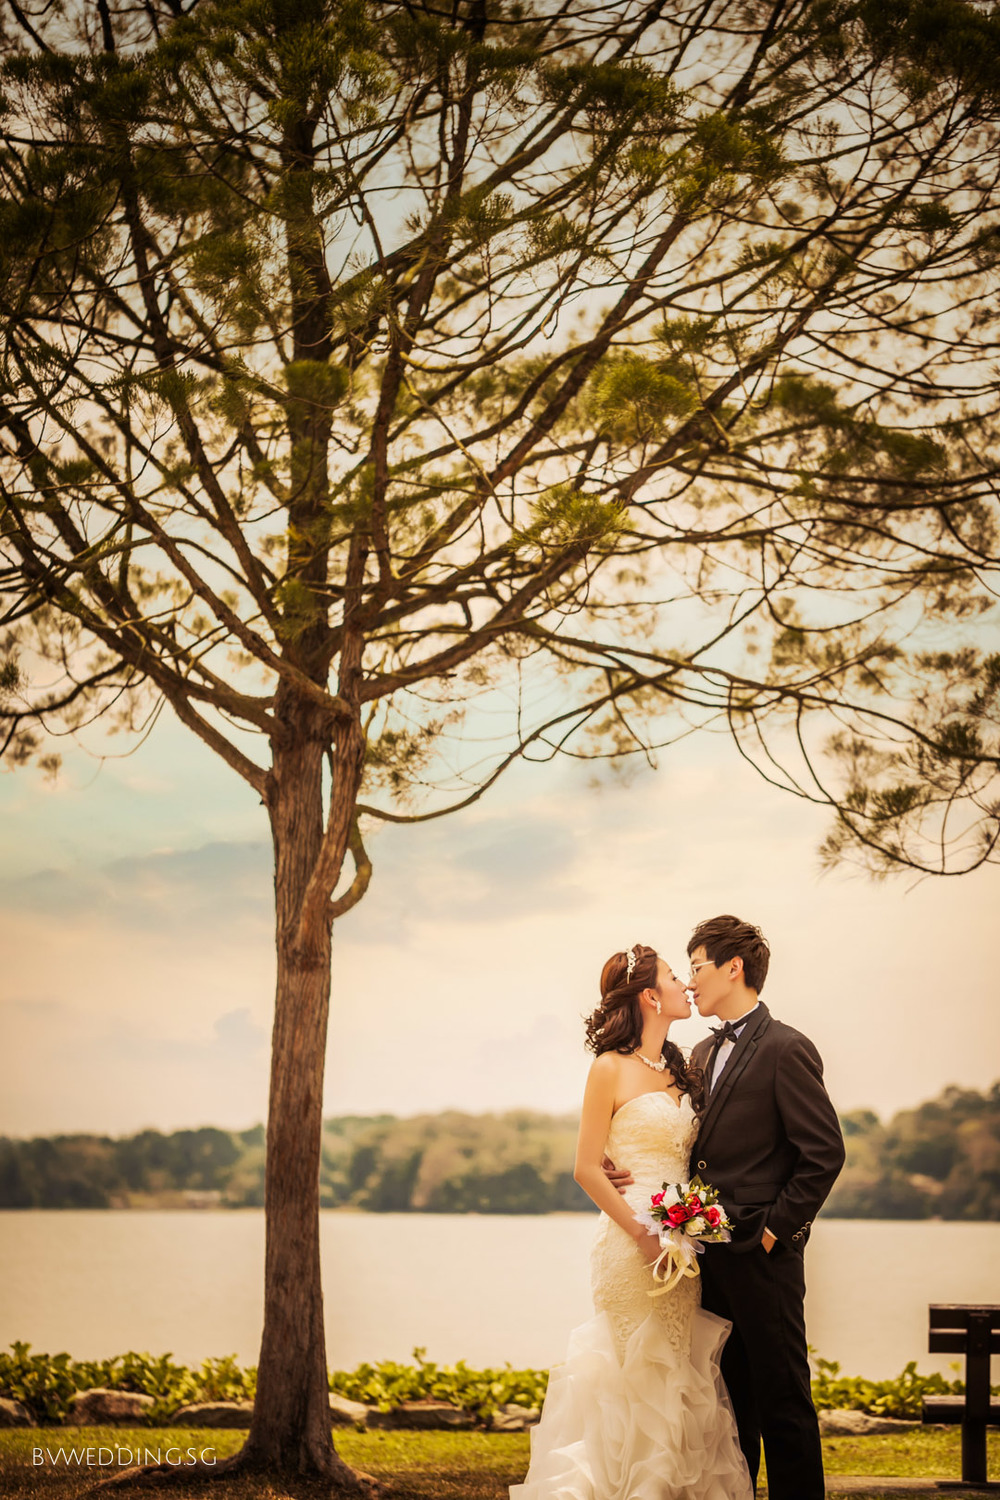 Pre-wedding Photoshoot at upper Seletar